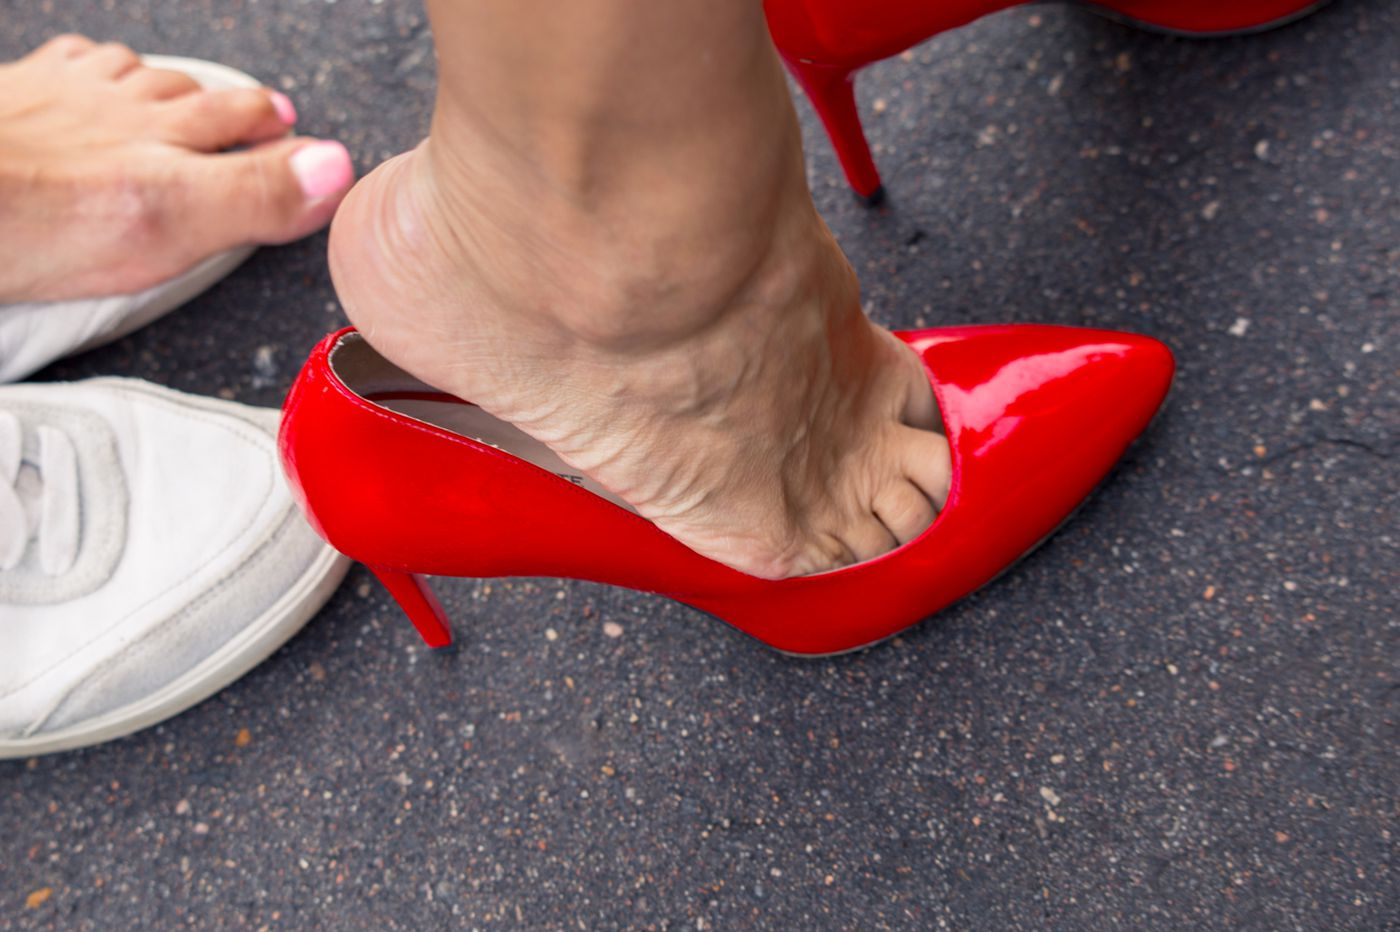 How to choose shoes now to avoid foot pain and surgery later